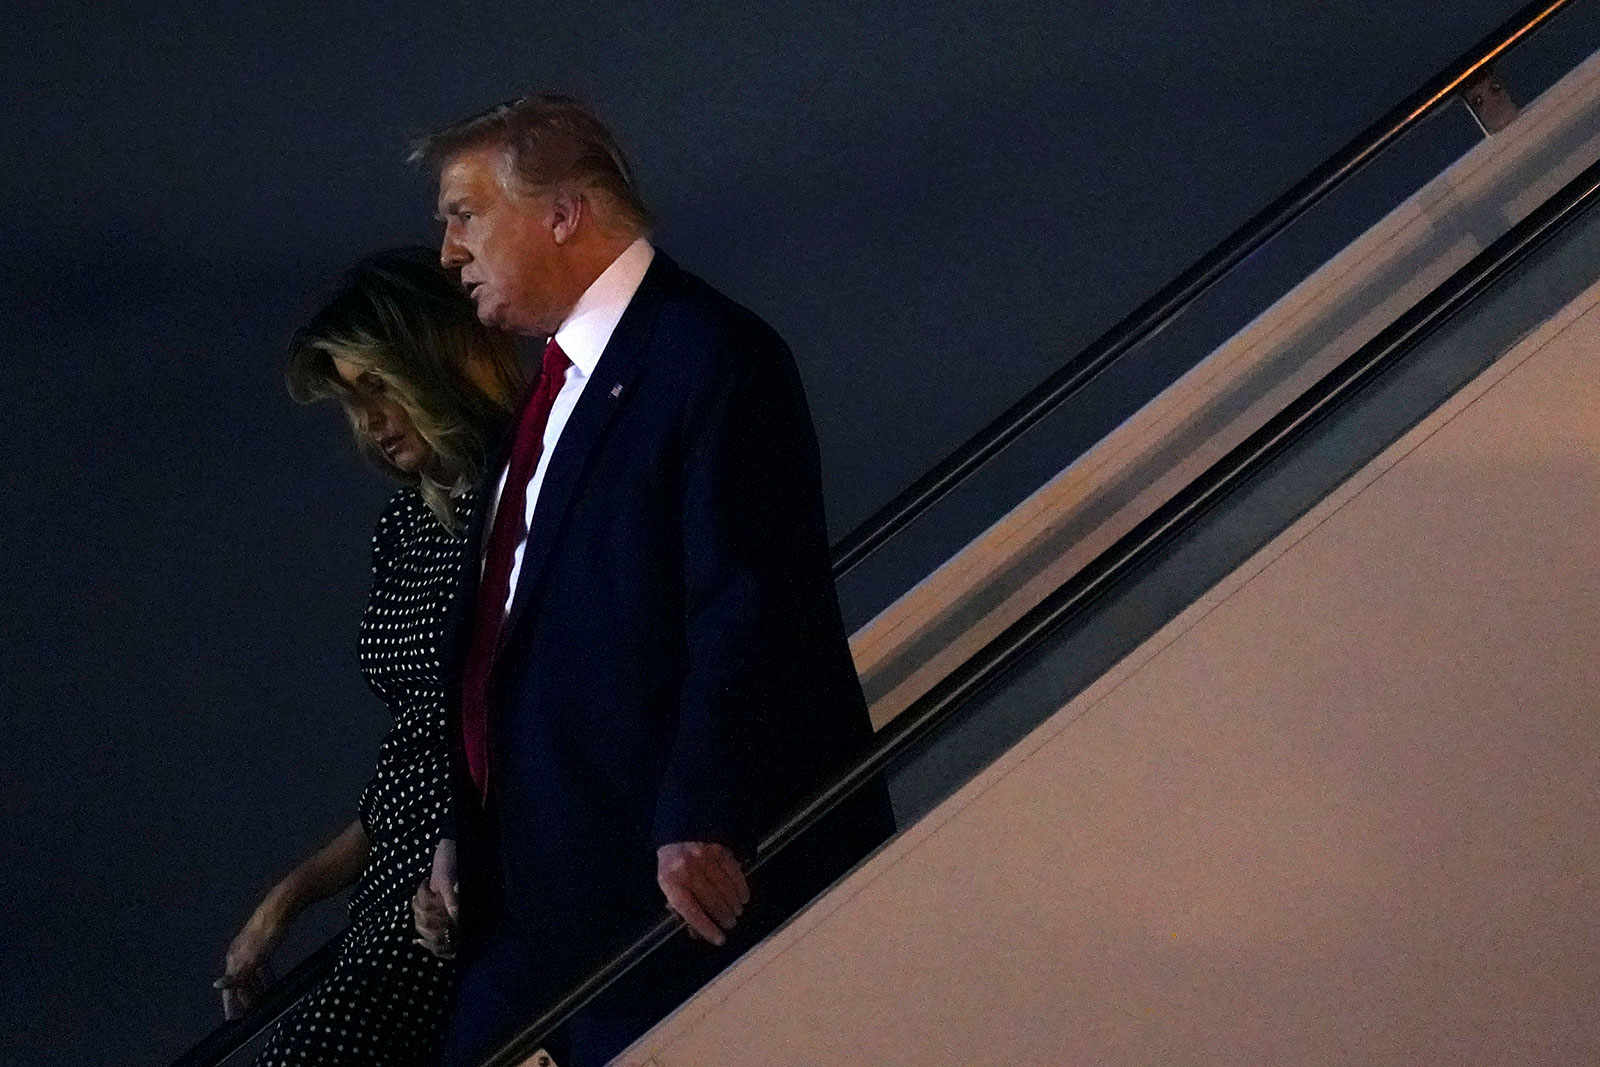 President Donald Trump and first lady Melania Trump disembark Air Force One at Palm Beach International Airport on Wednesday, December 23.